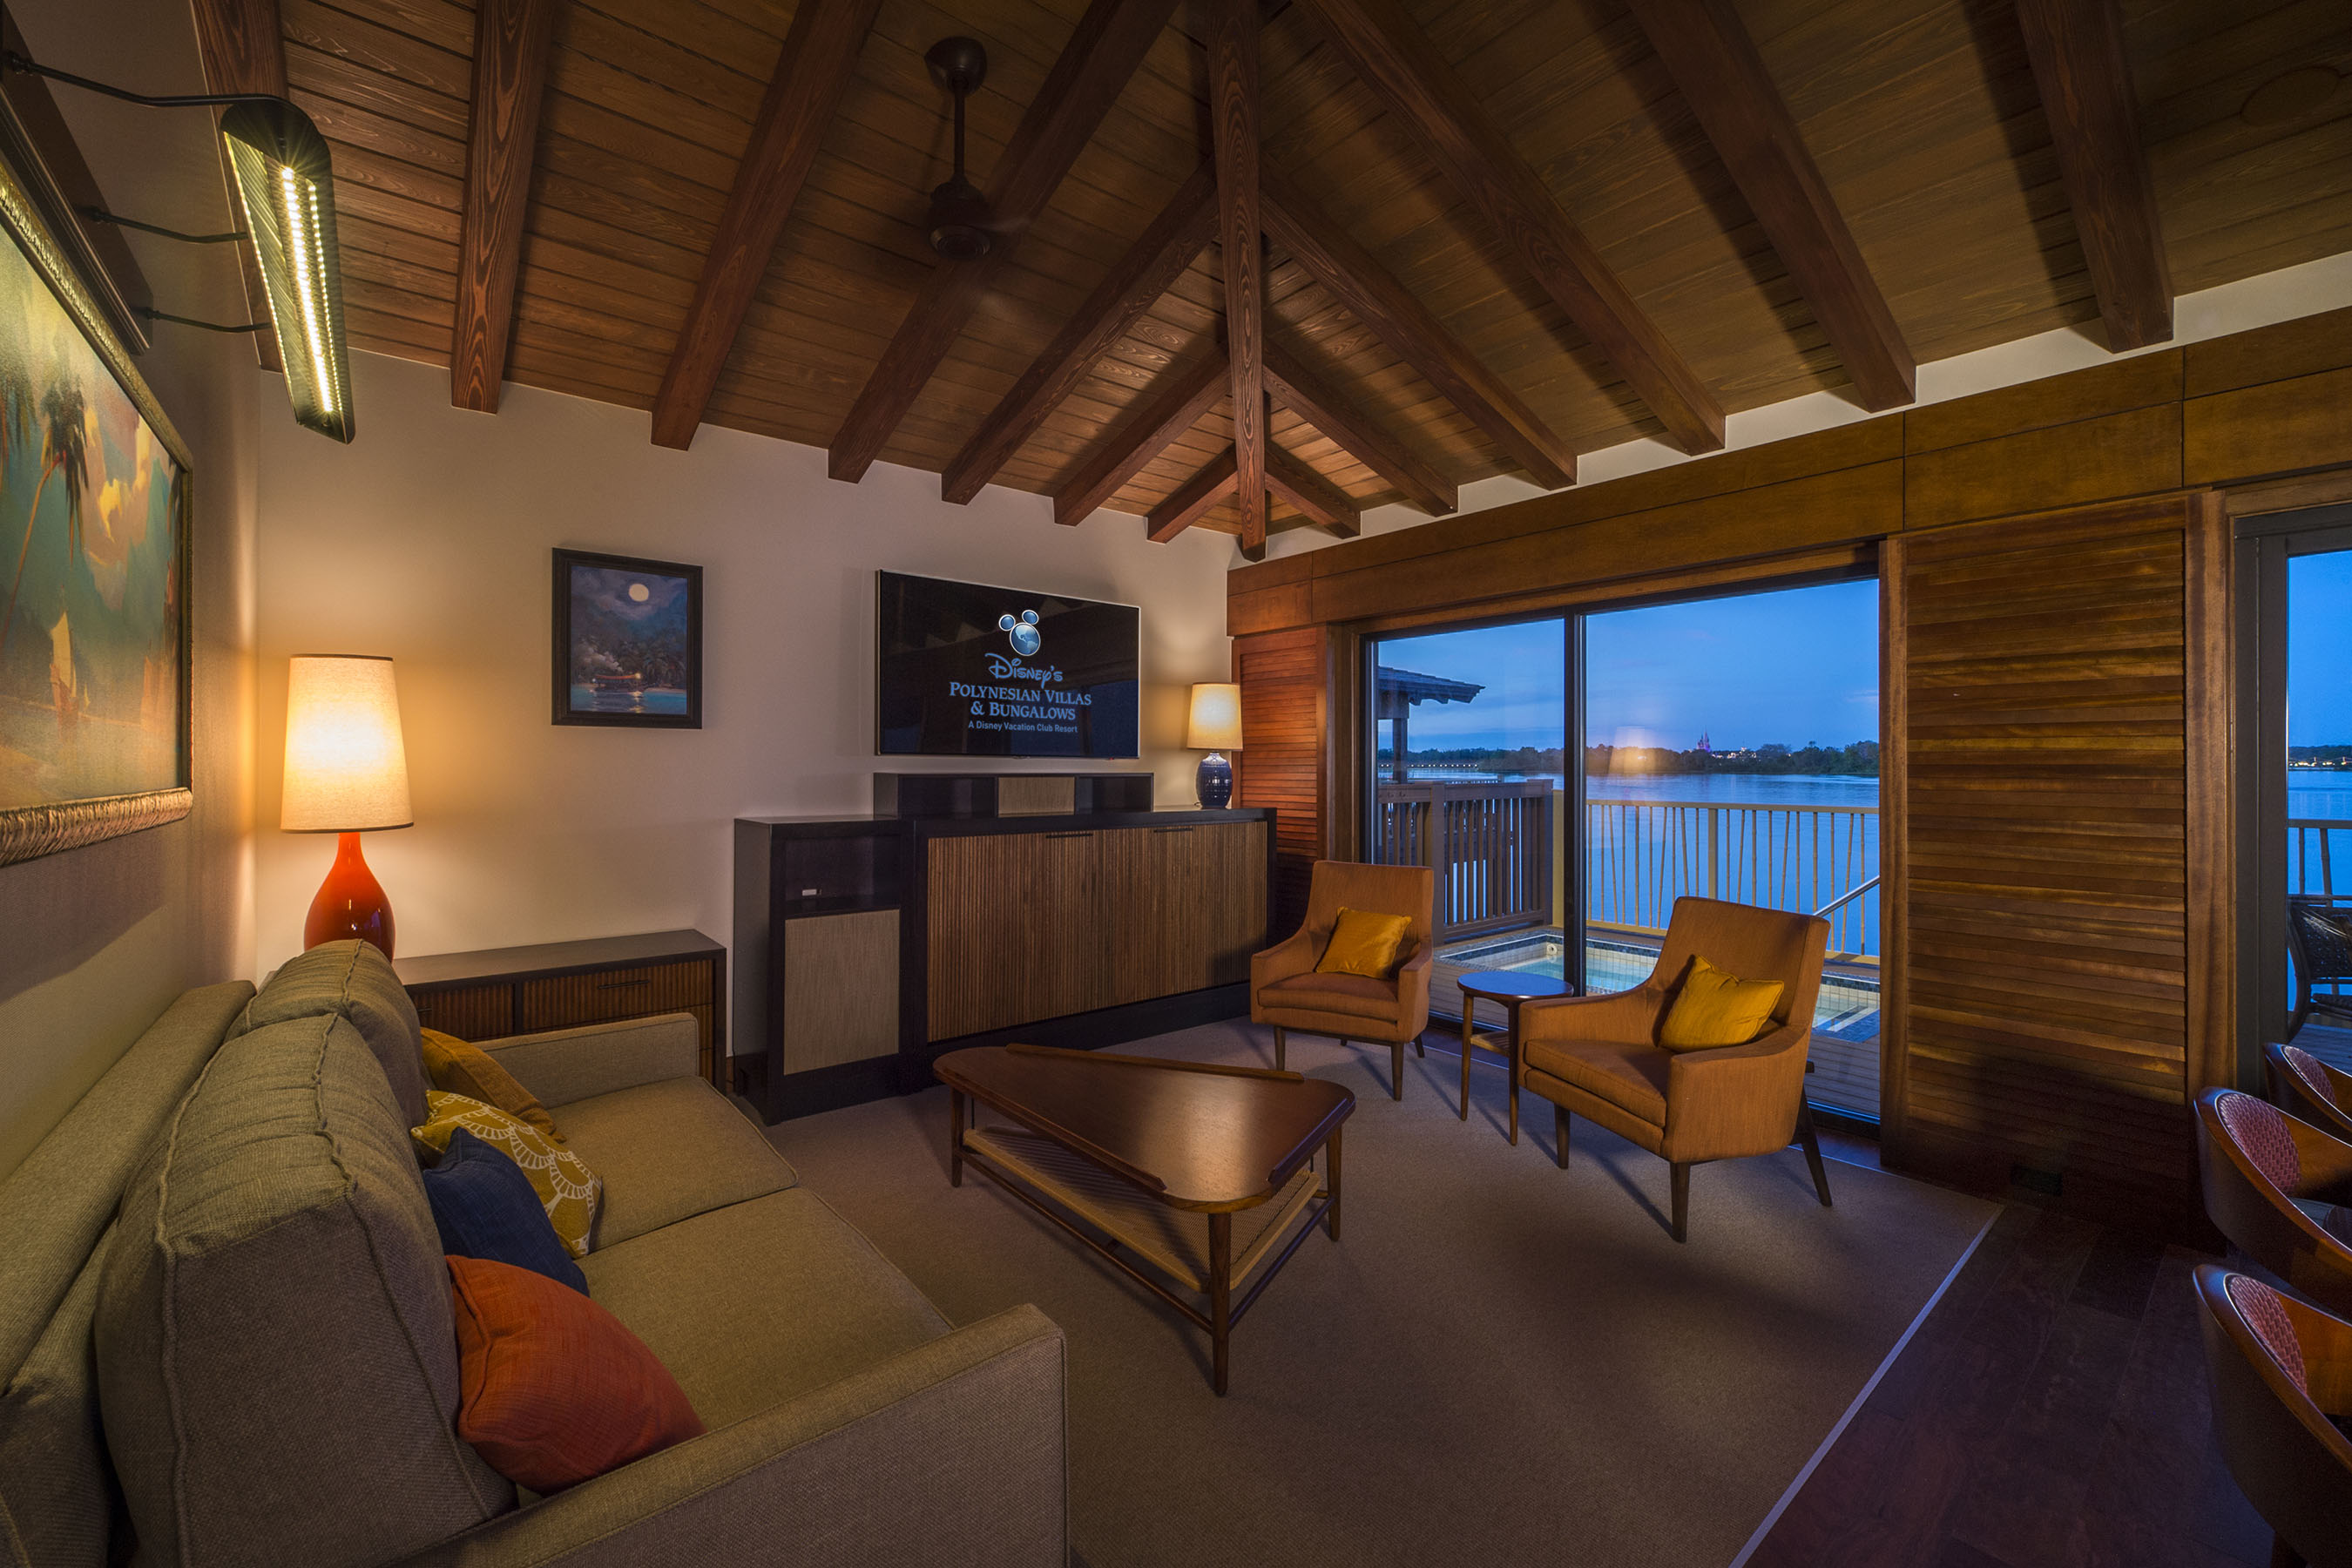 Photo Tour of The Bora Bora Bungalows at Disneys